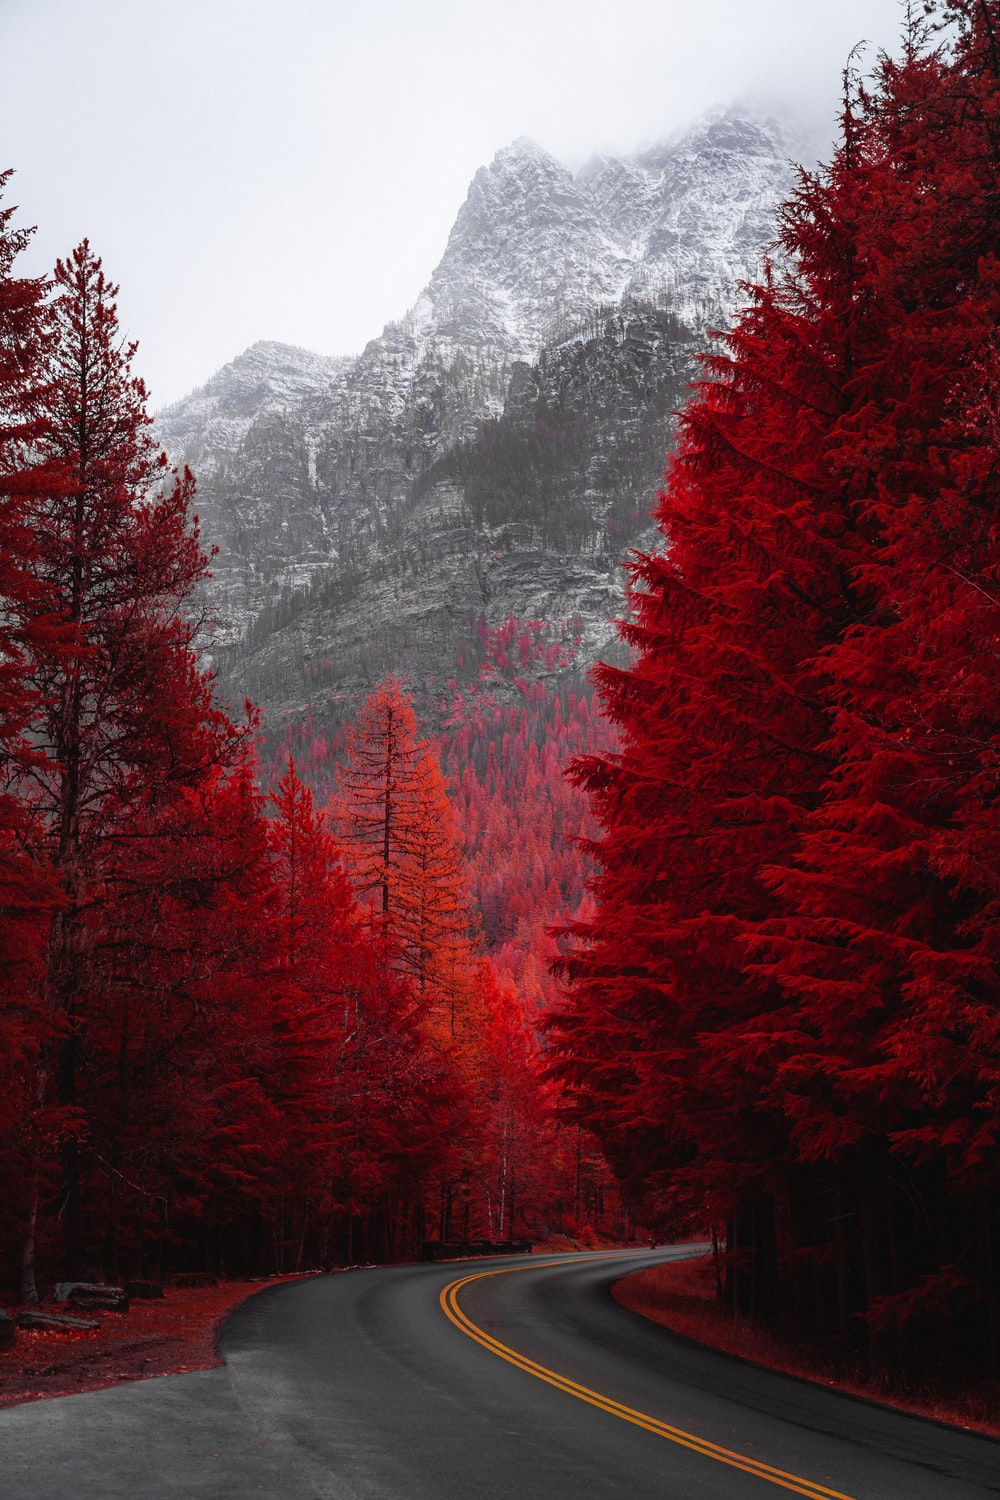 road beside red trees